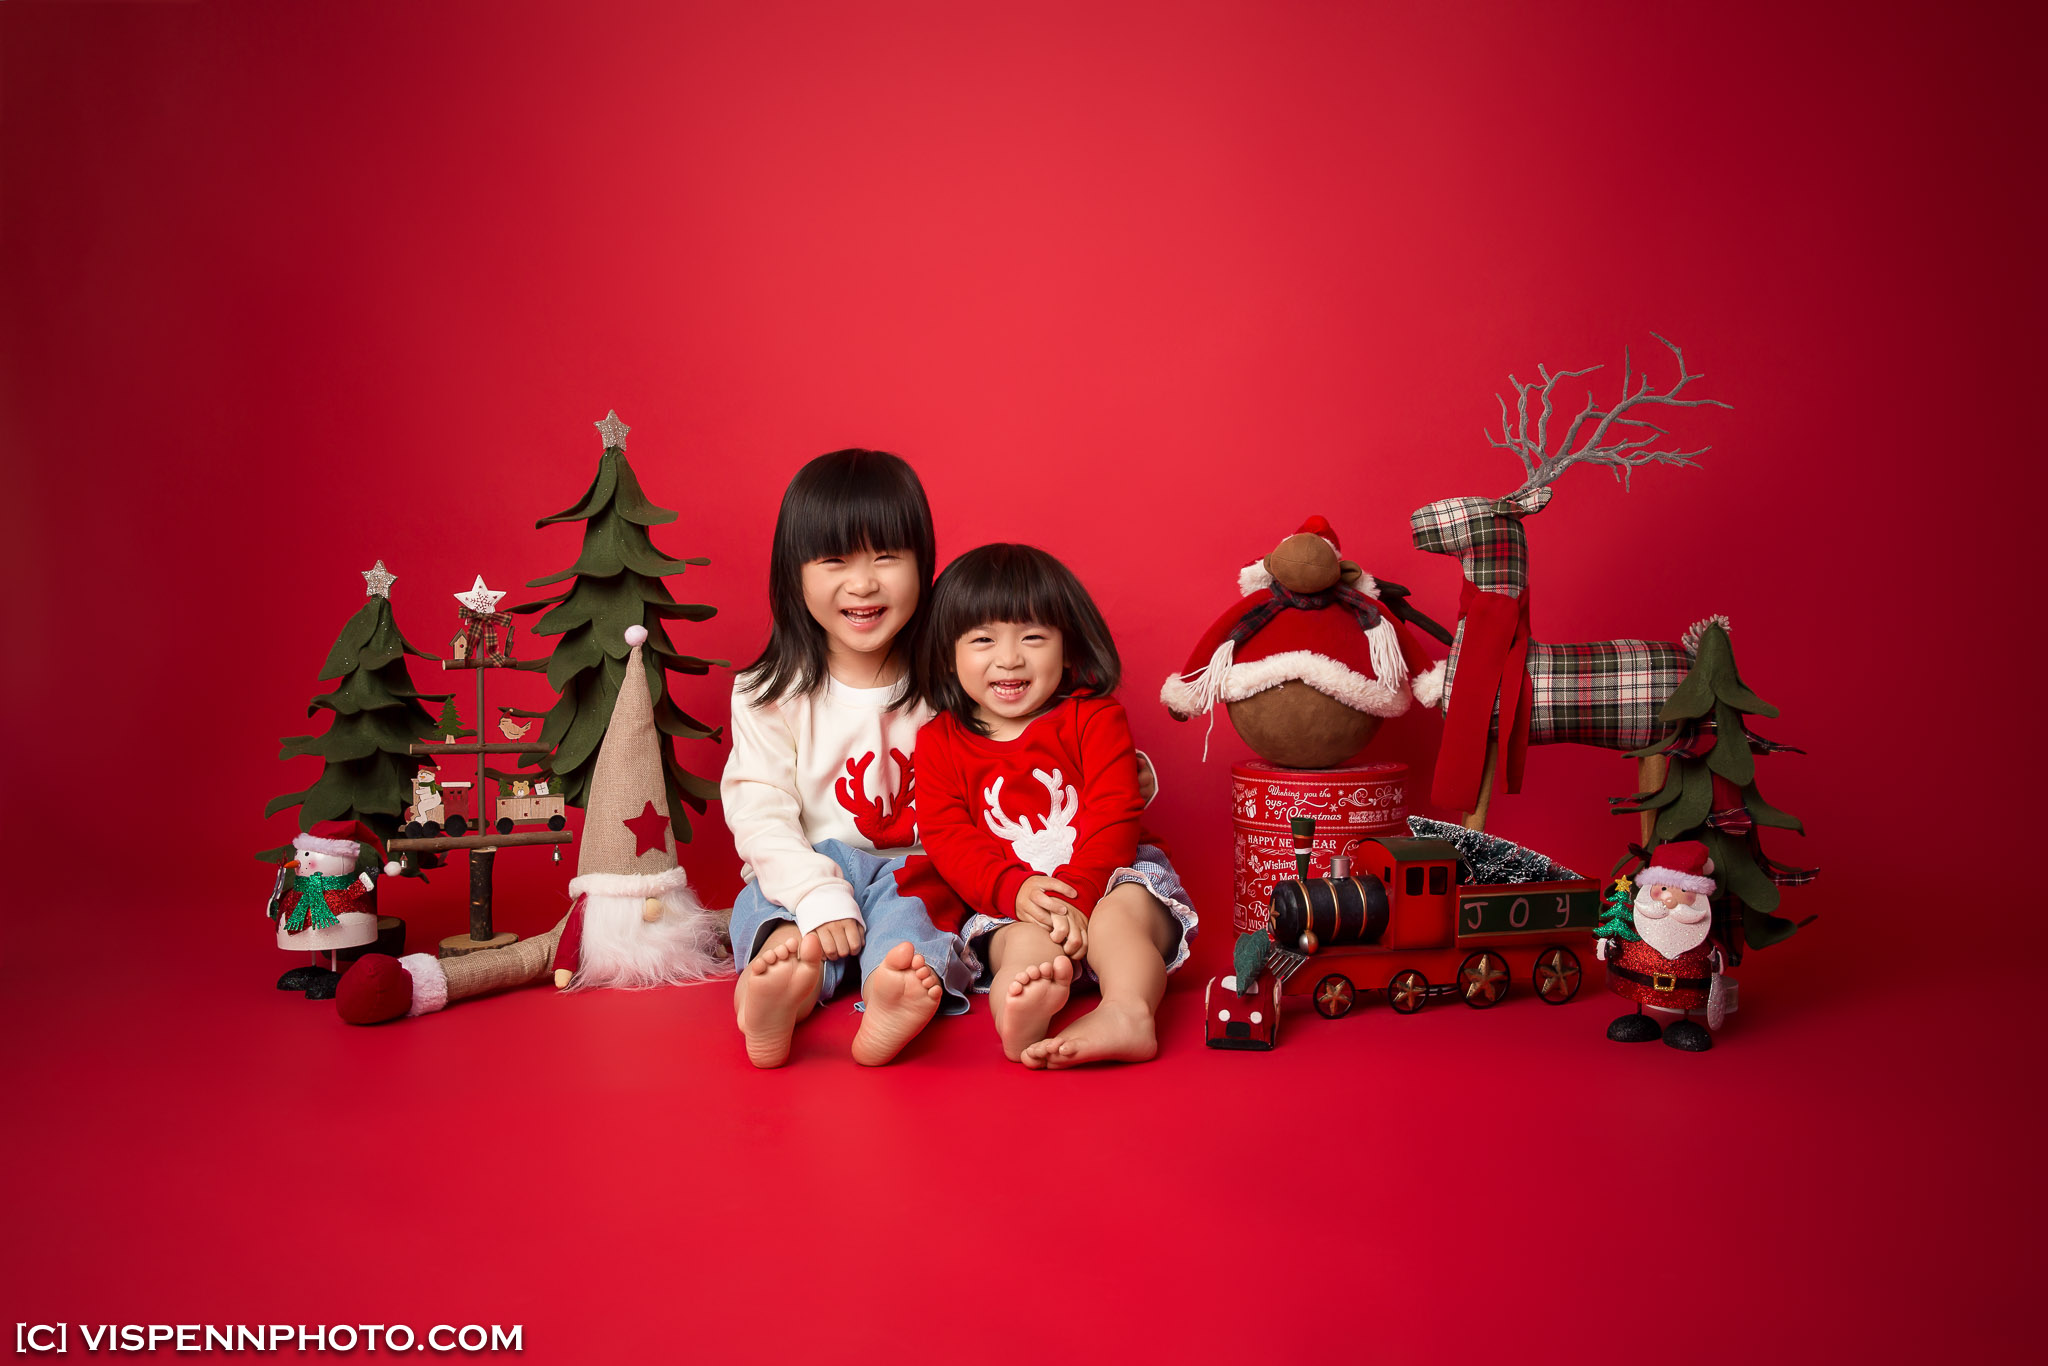 Melbourne Newborn Baby Family Photo BaoBao VISPENN 墨尔本 儿童 宝宝 百天照 满月照 孕妇照 全家福 KIDS VISPENN FionaYU 1259